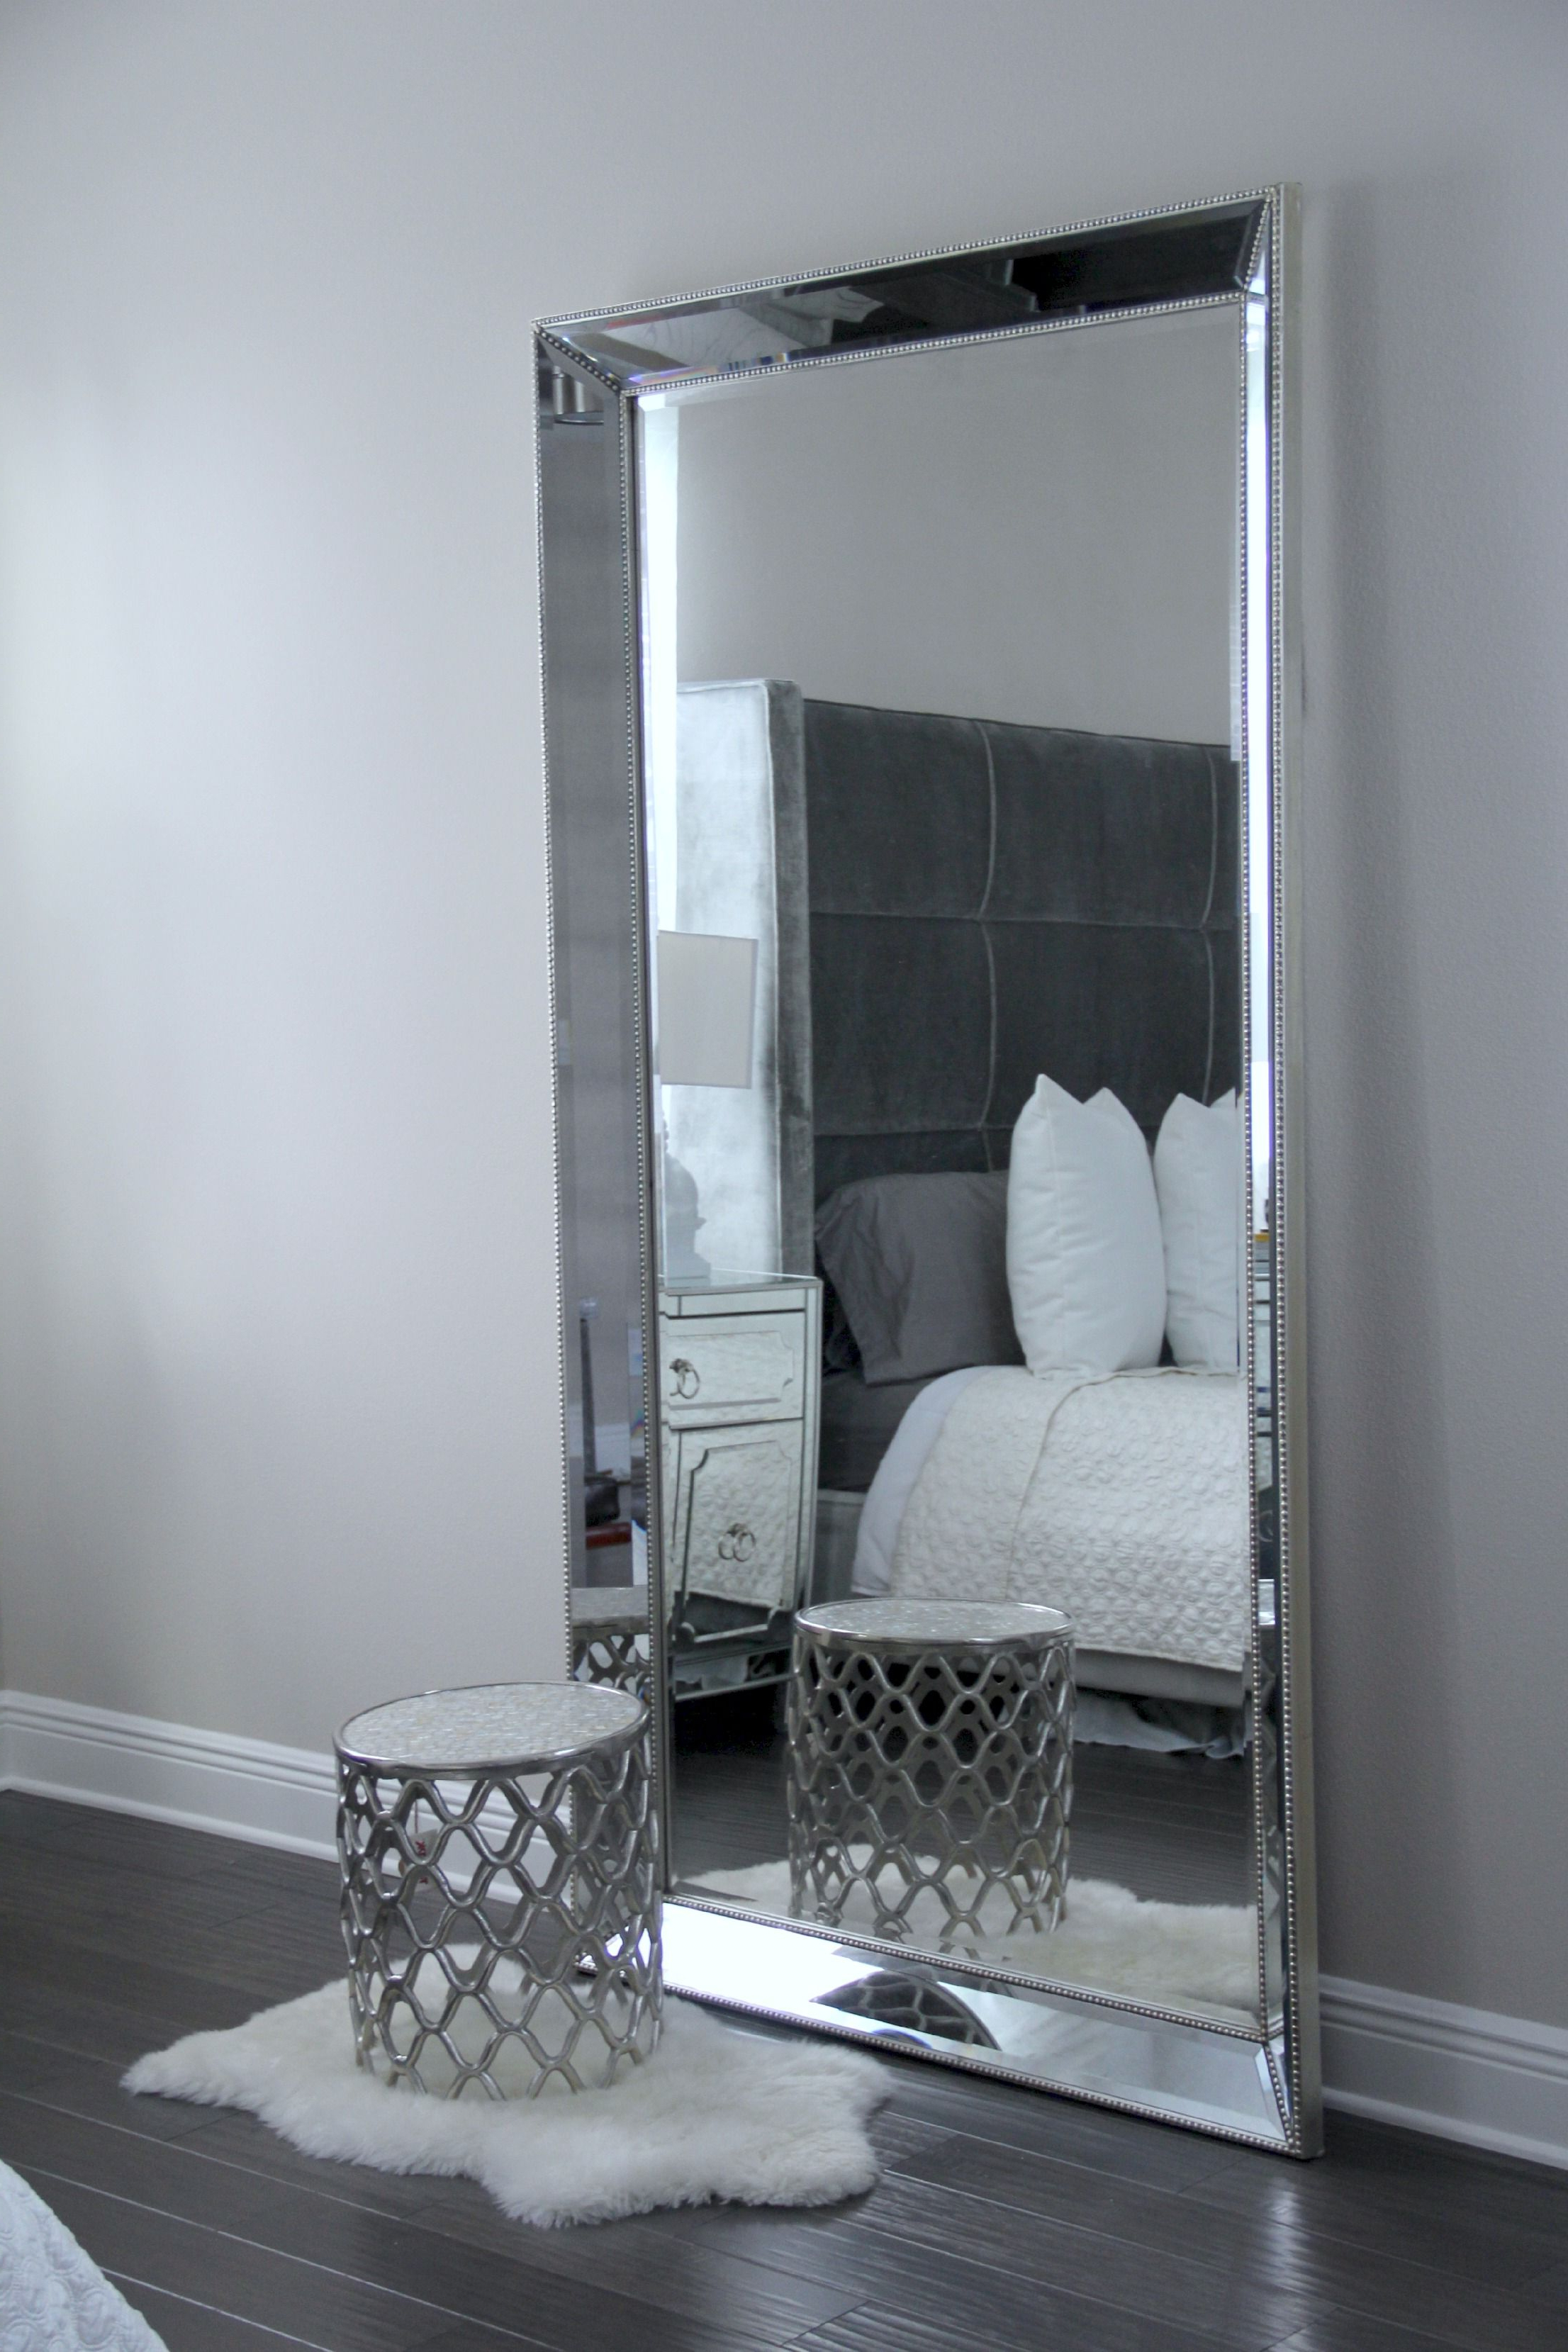 Antique Leaner Mirror For Your Room Decoration Ideas: Silver Pertaining To Most Up To Date Floor Wall Mirrors (View 1 of 20)